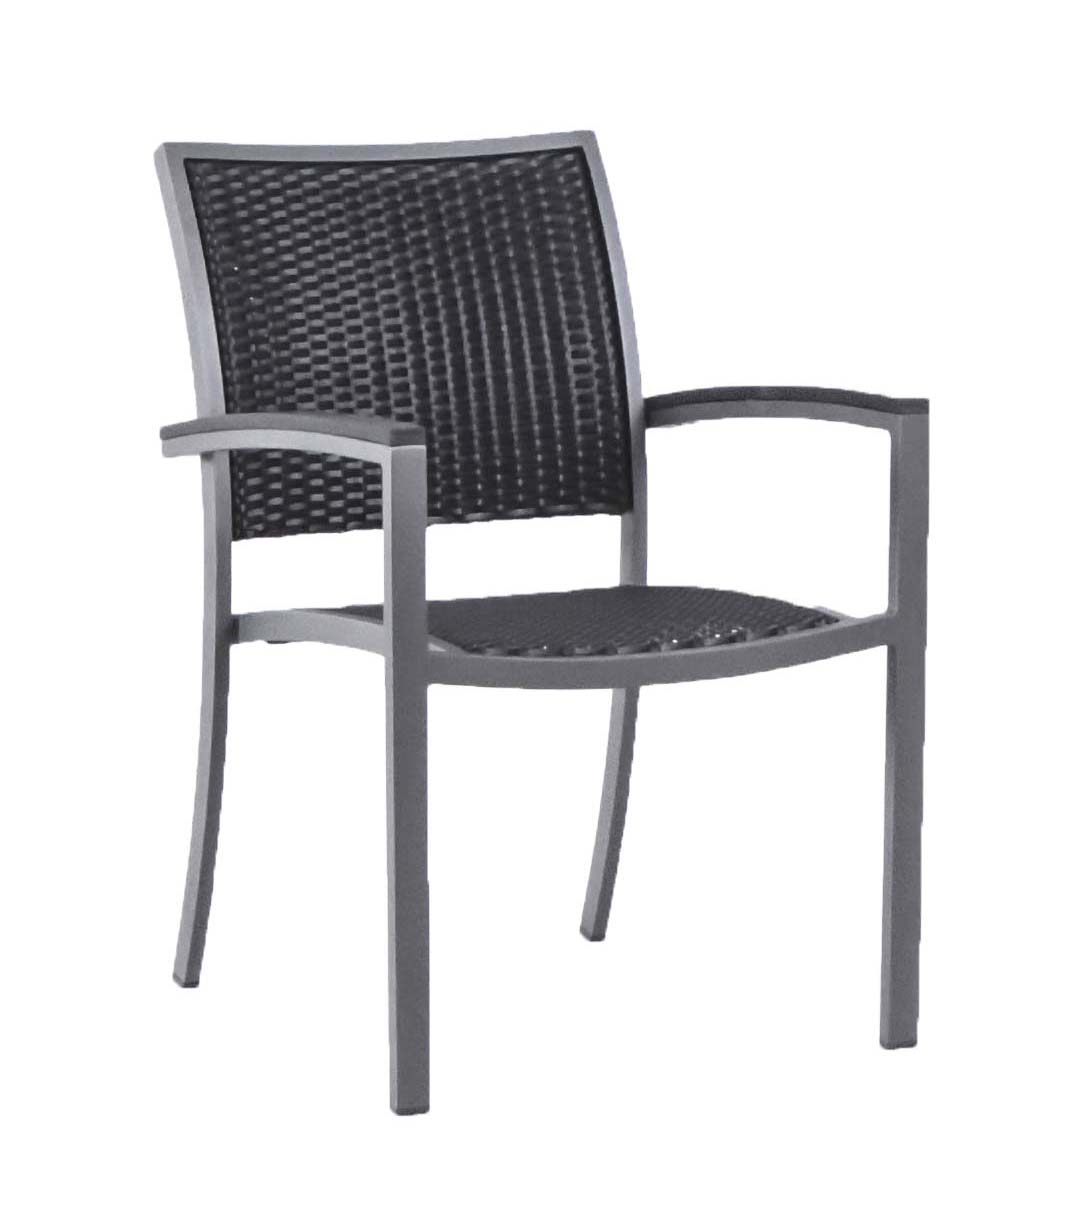 "882121 Capri Arm Chair  24.4"" x 25.2"" x 35.8"""